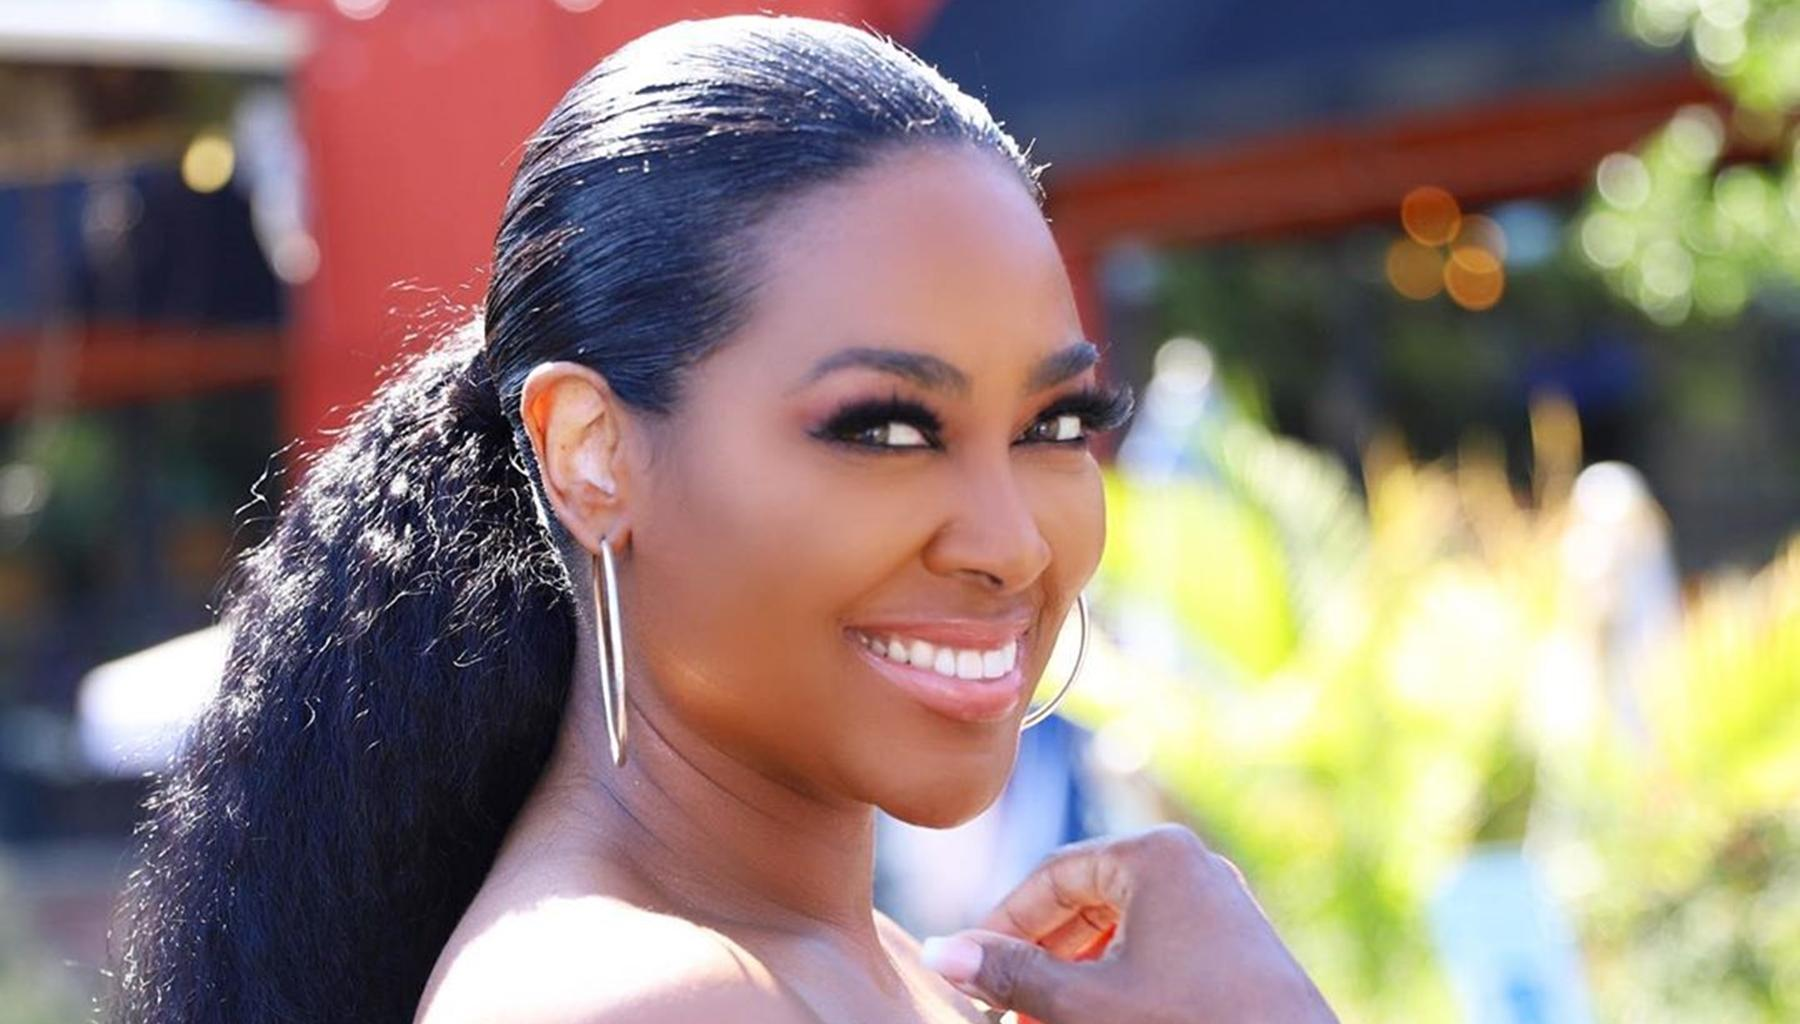 Kandi Burruss Supports Kenya Moore Following Her Breakup With Marc Daly - See Kenya's Gorgeous Photo With Brooklyn Daly